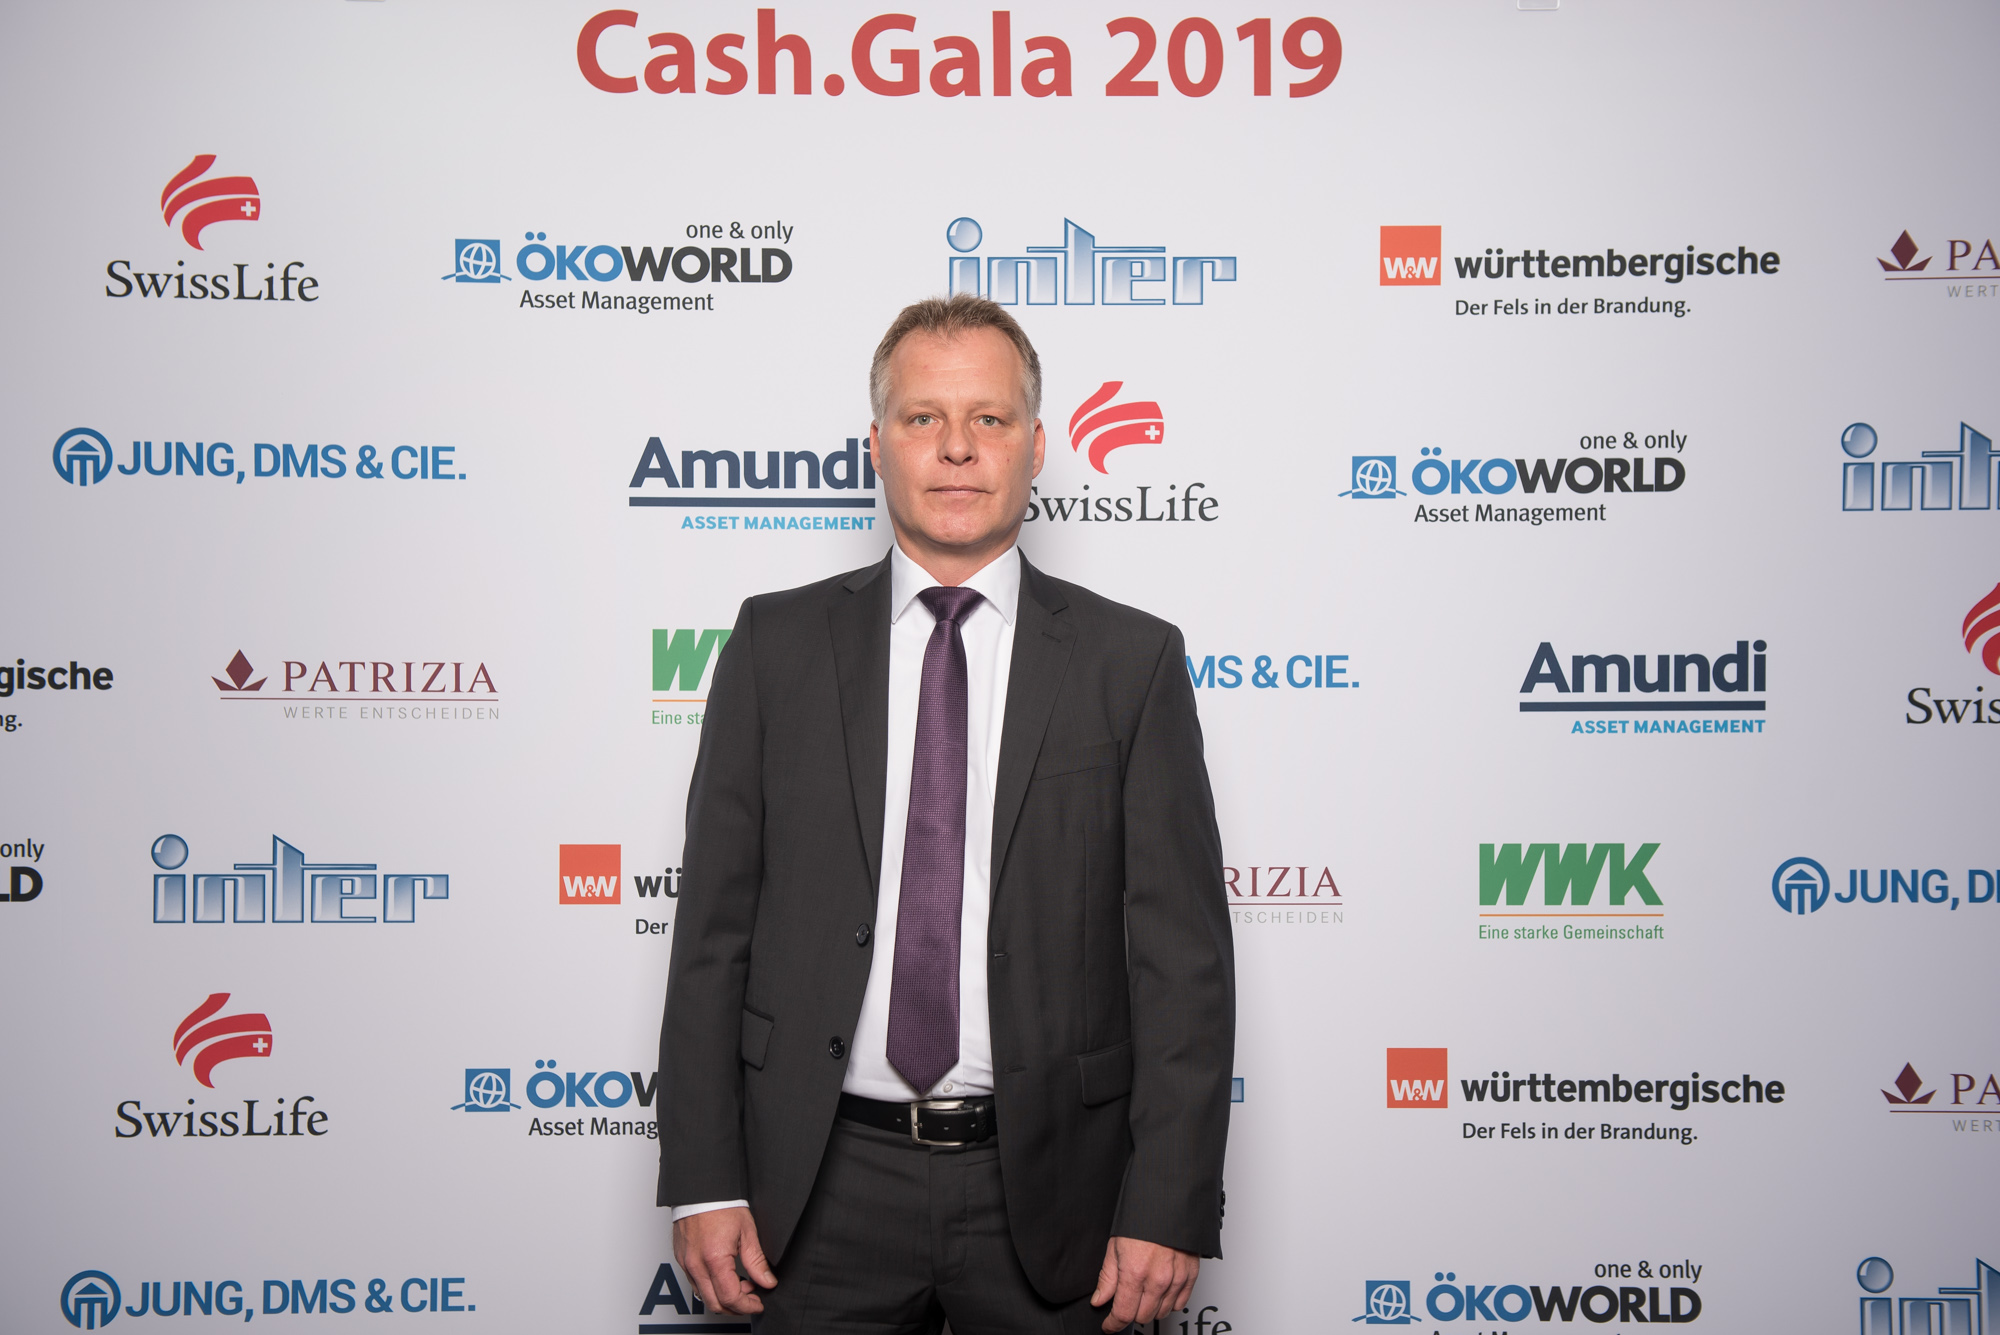 CashGala 2019 0017 AM DSC6990 in Cash.Gala 2019